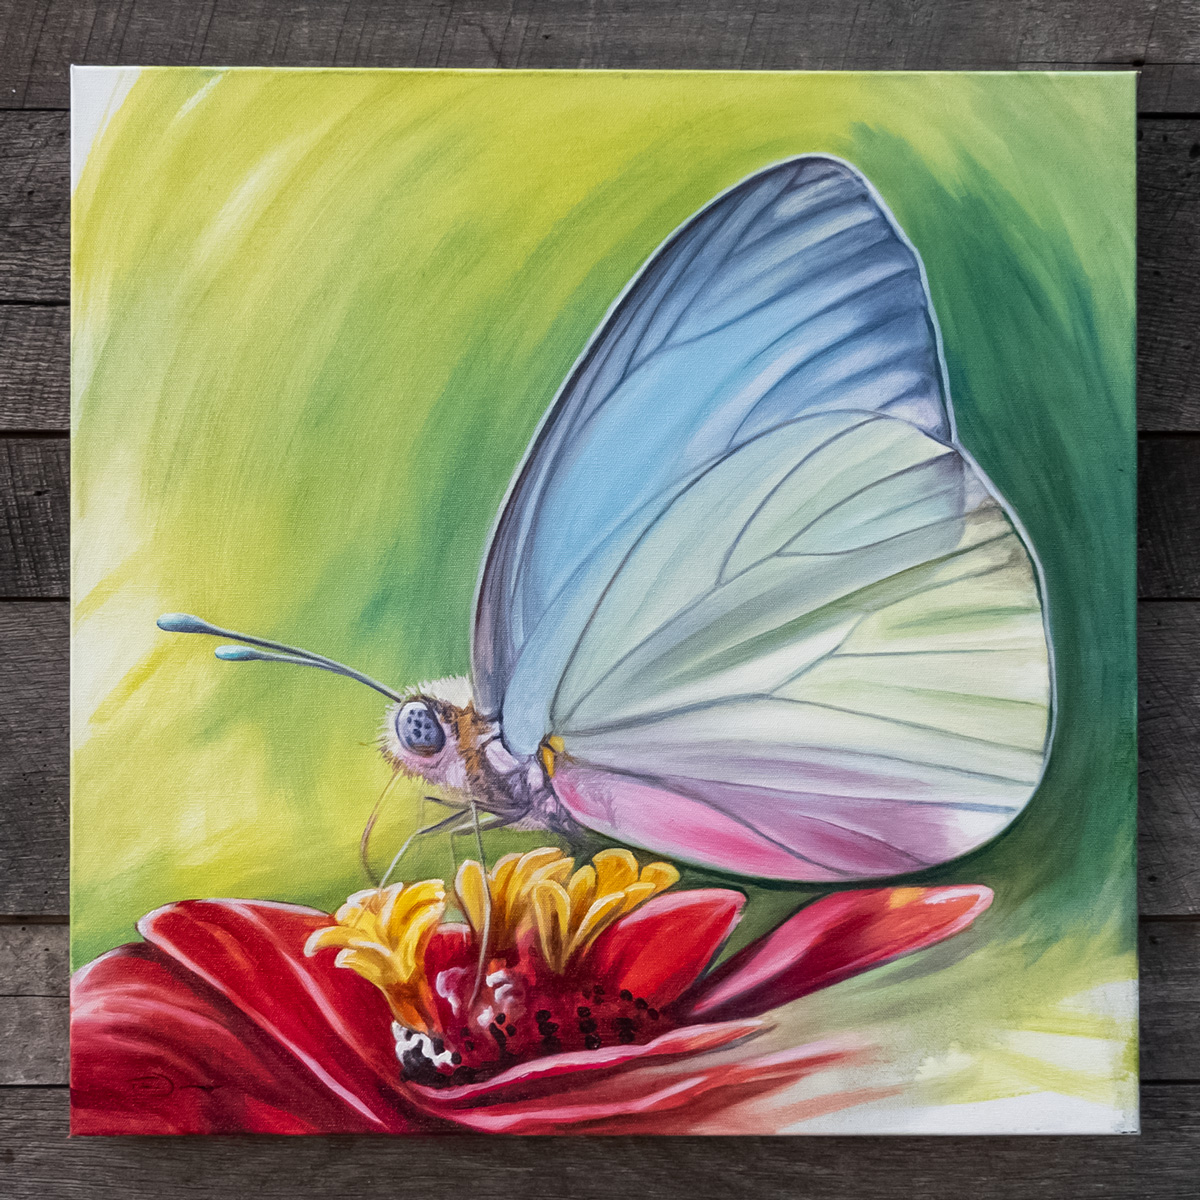 Chase's Butterfly - Original oil painting by Timothy Tim Davison of the Davison Art Company featuring a butterfly sitting on a flower, southern white or pirpinto butterfly on a zinnia flower.